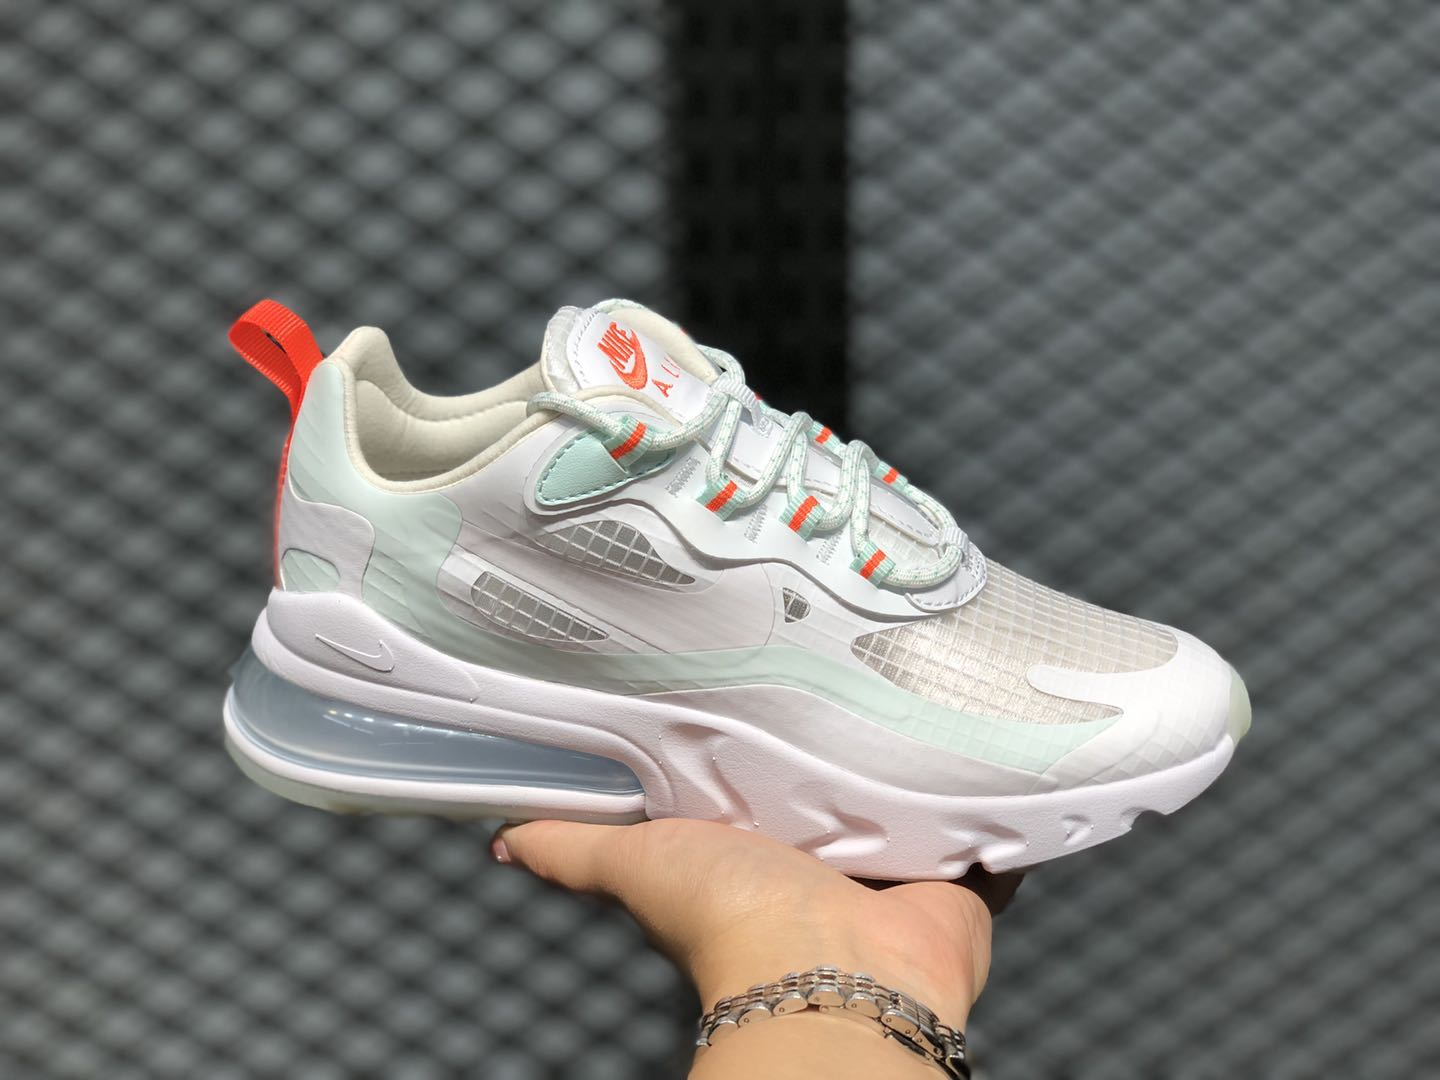 Nike Wmns Air Max 270 React White/Hyper Crimson-Teal Tint CJ0620-100